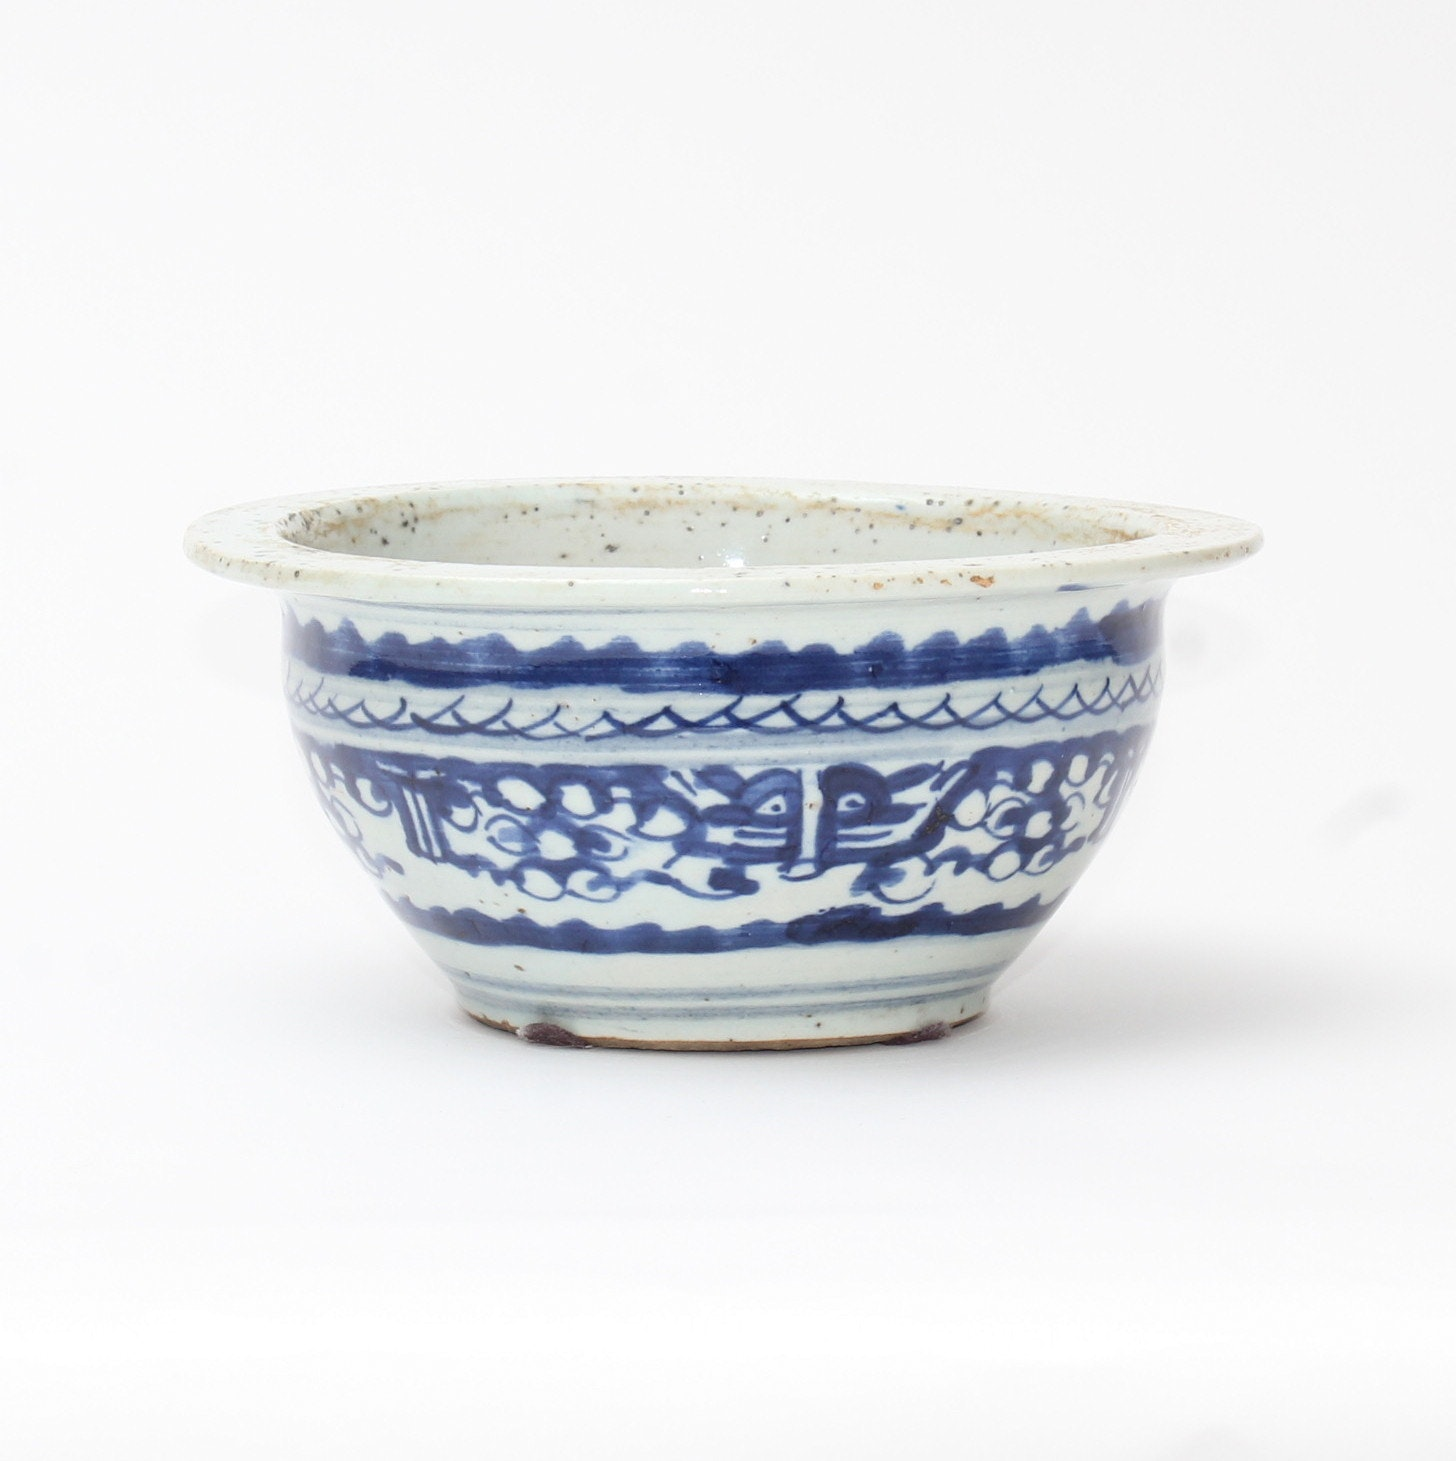 Circa 1880 Chinese Pottery Bowl